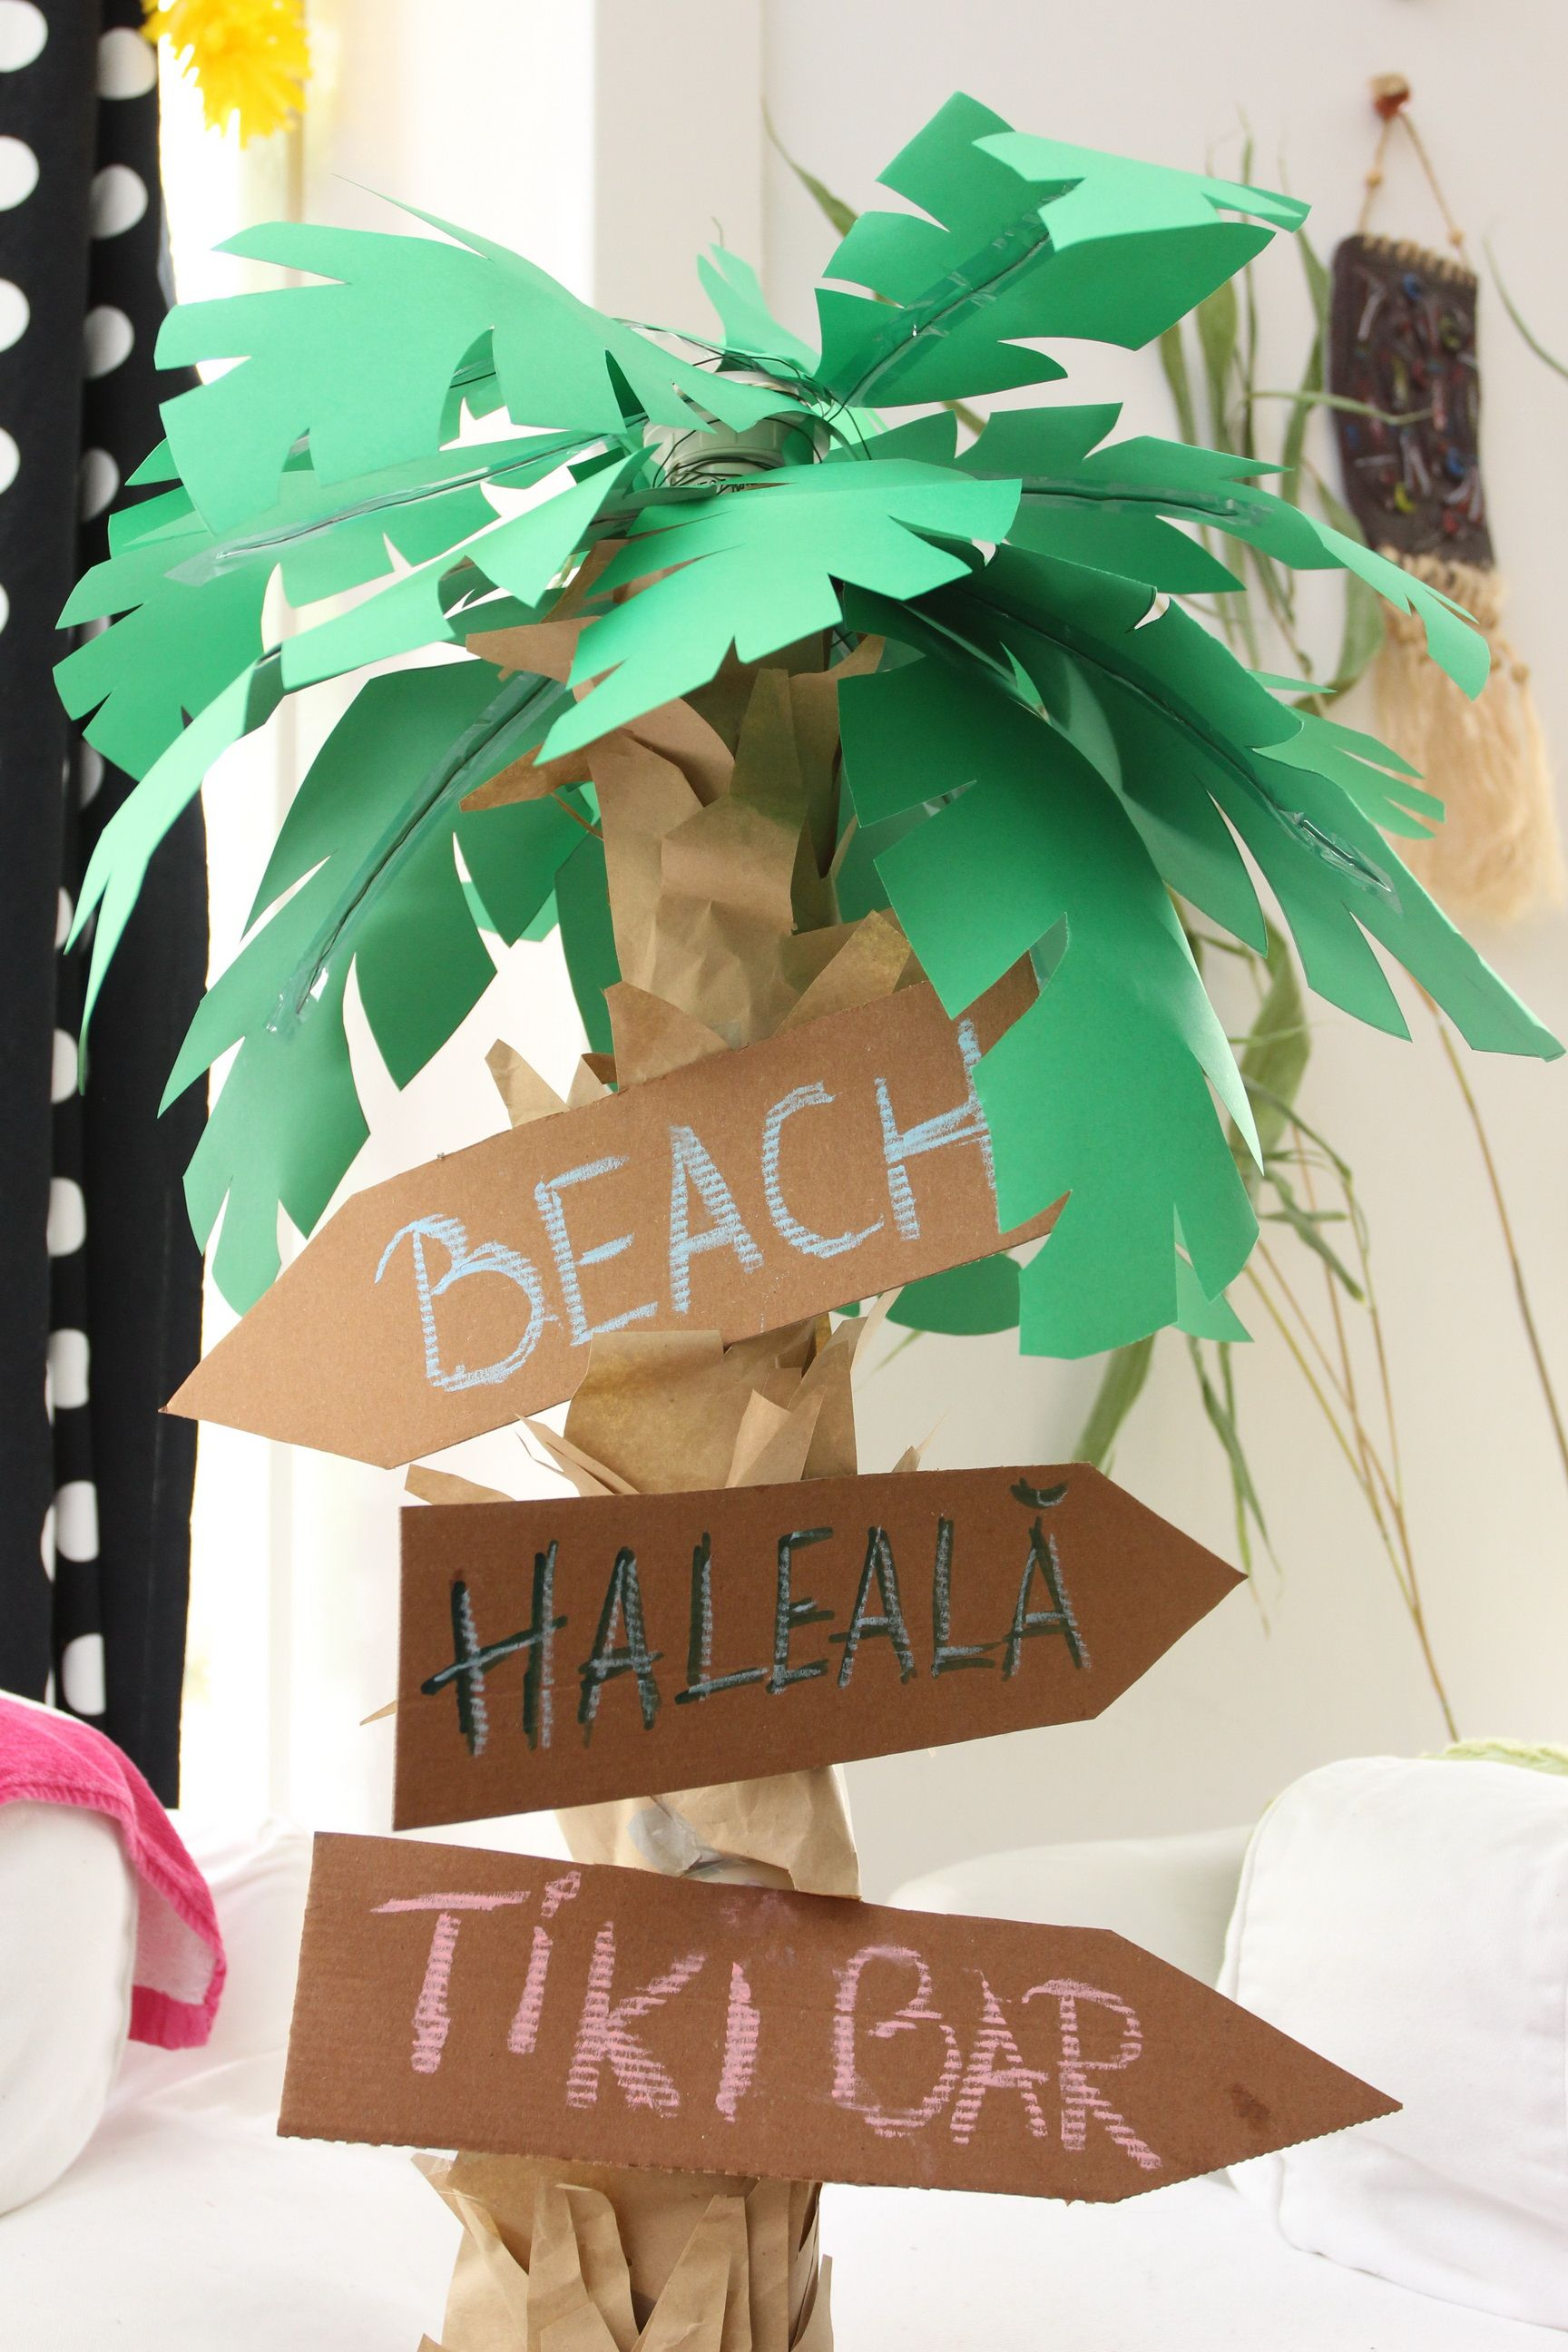 fiesta hawaiana ideas originales para celebracin temtica - Palm Tree Decor